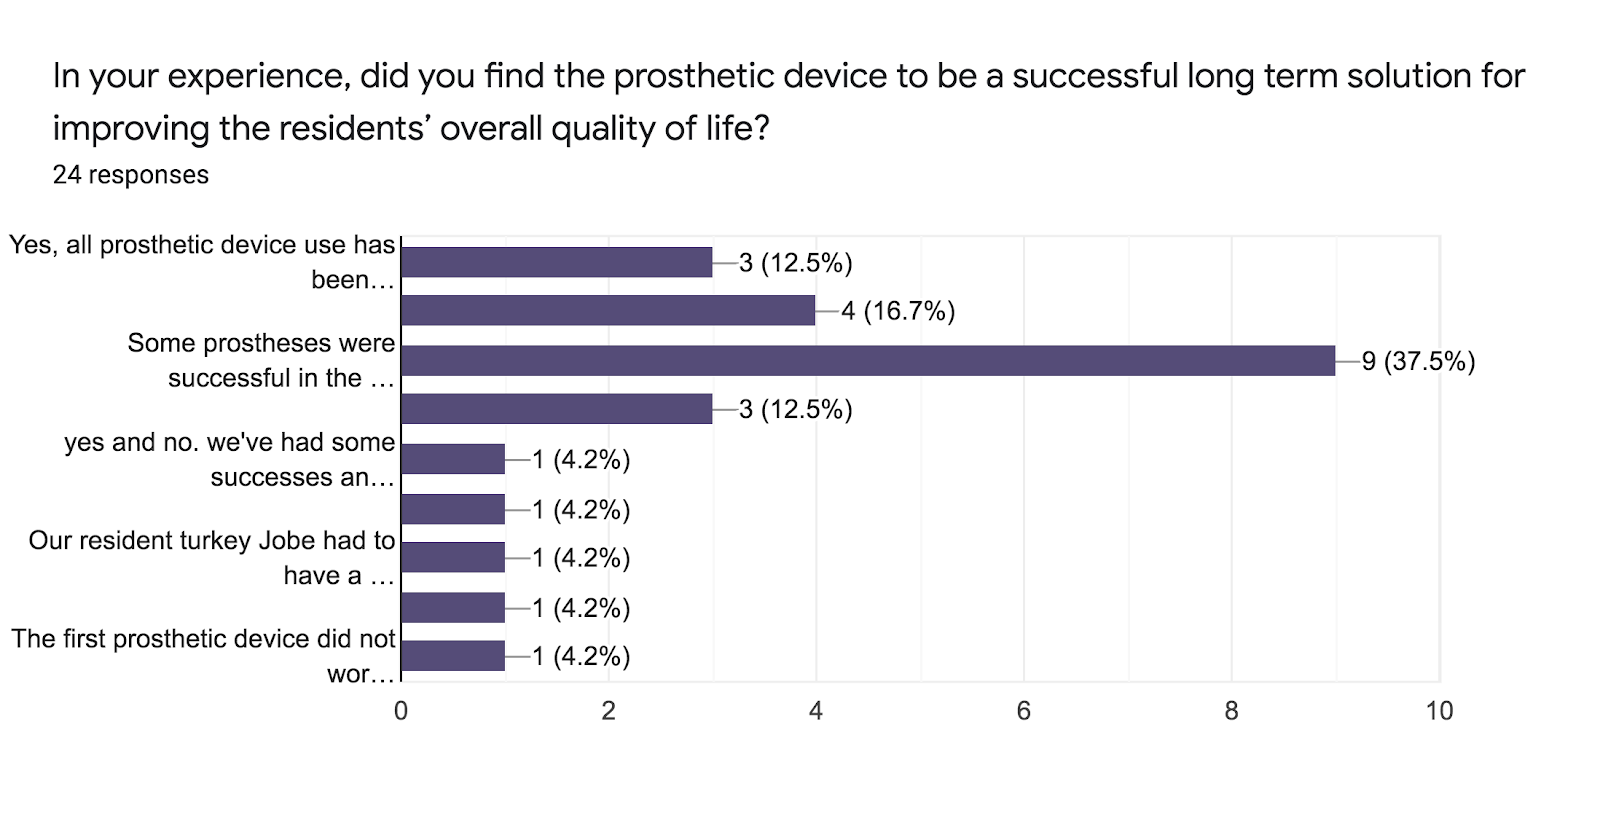 Forms response chart. Question title: In your experience, did you find the prosthetic device to be a successful long term solution for improving the residents' overall quality of life?. Number of responses: 24 responses.